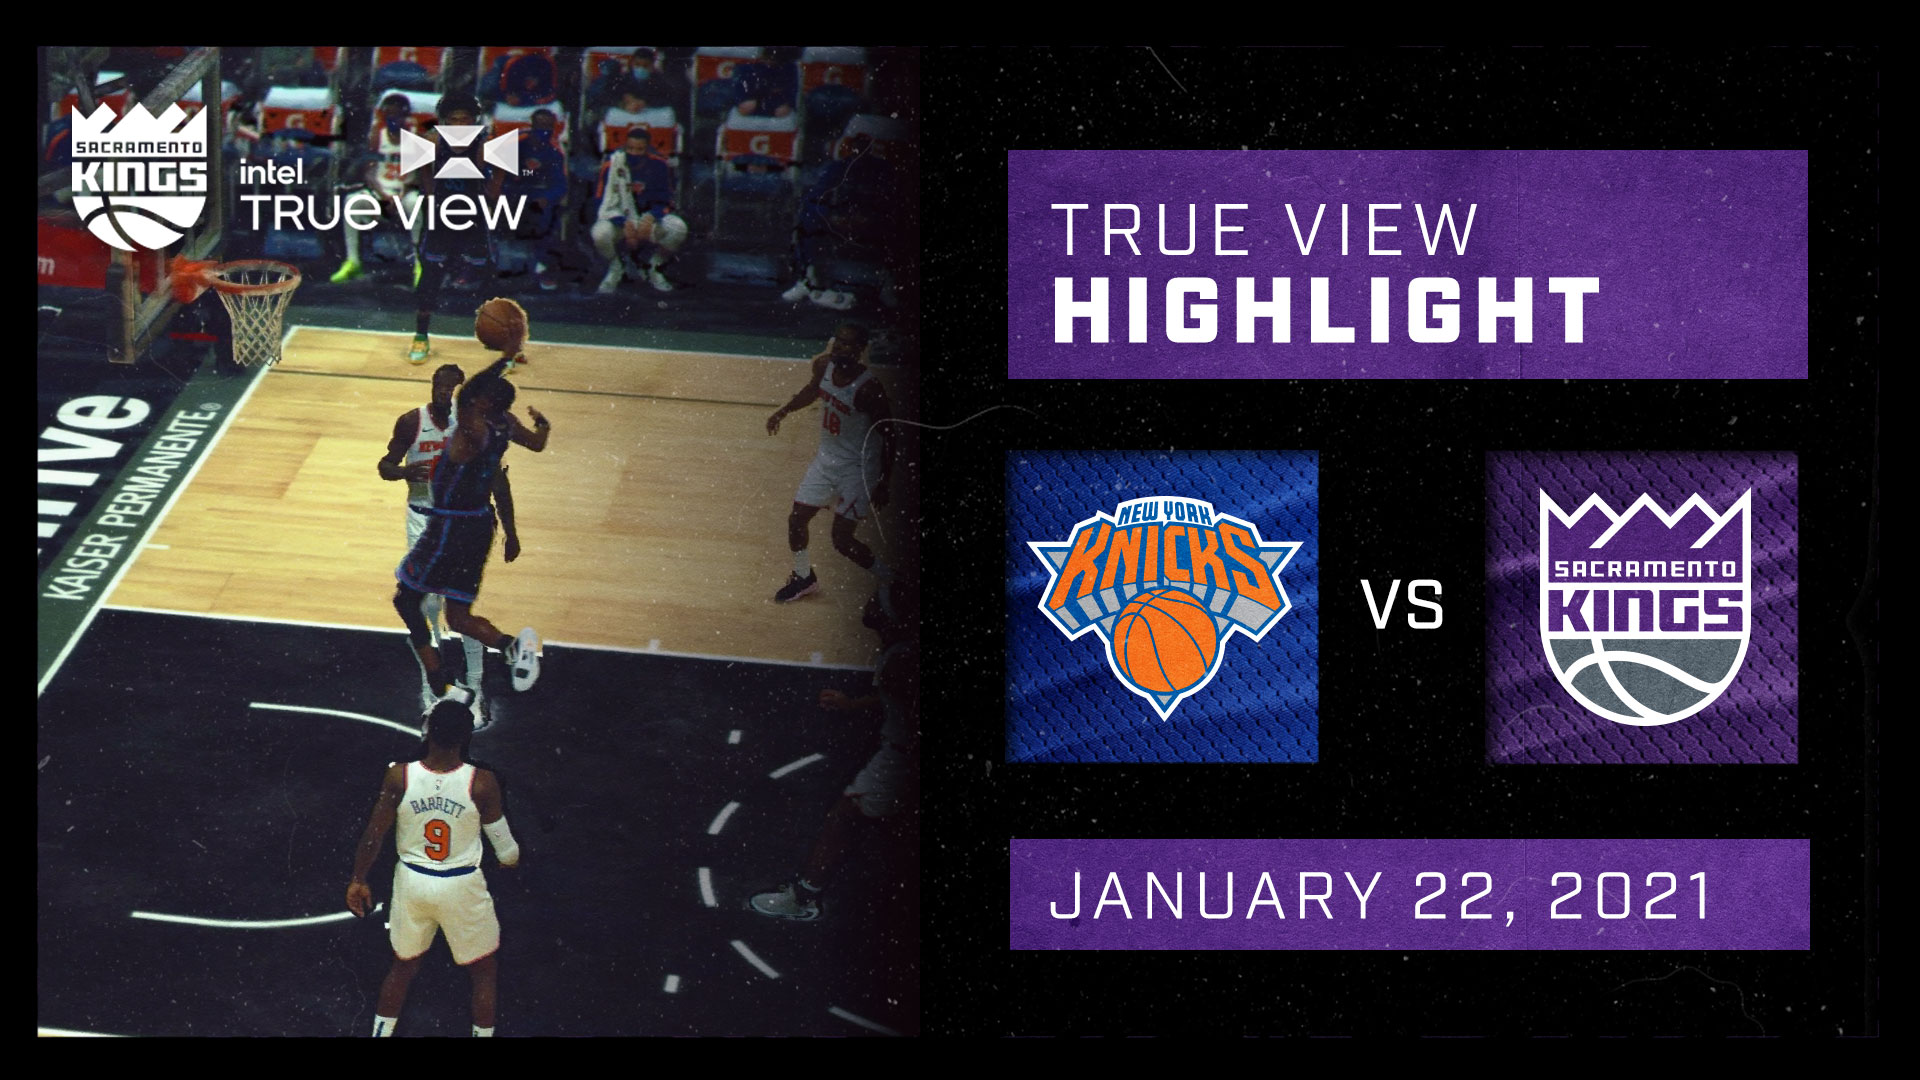 Intel True View Highlight - Fox Dunk vs Knicks 1.22.21